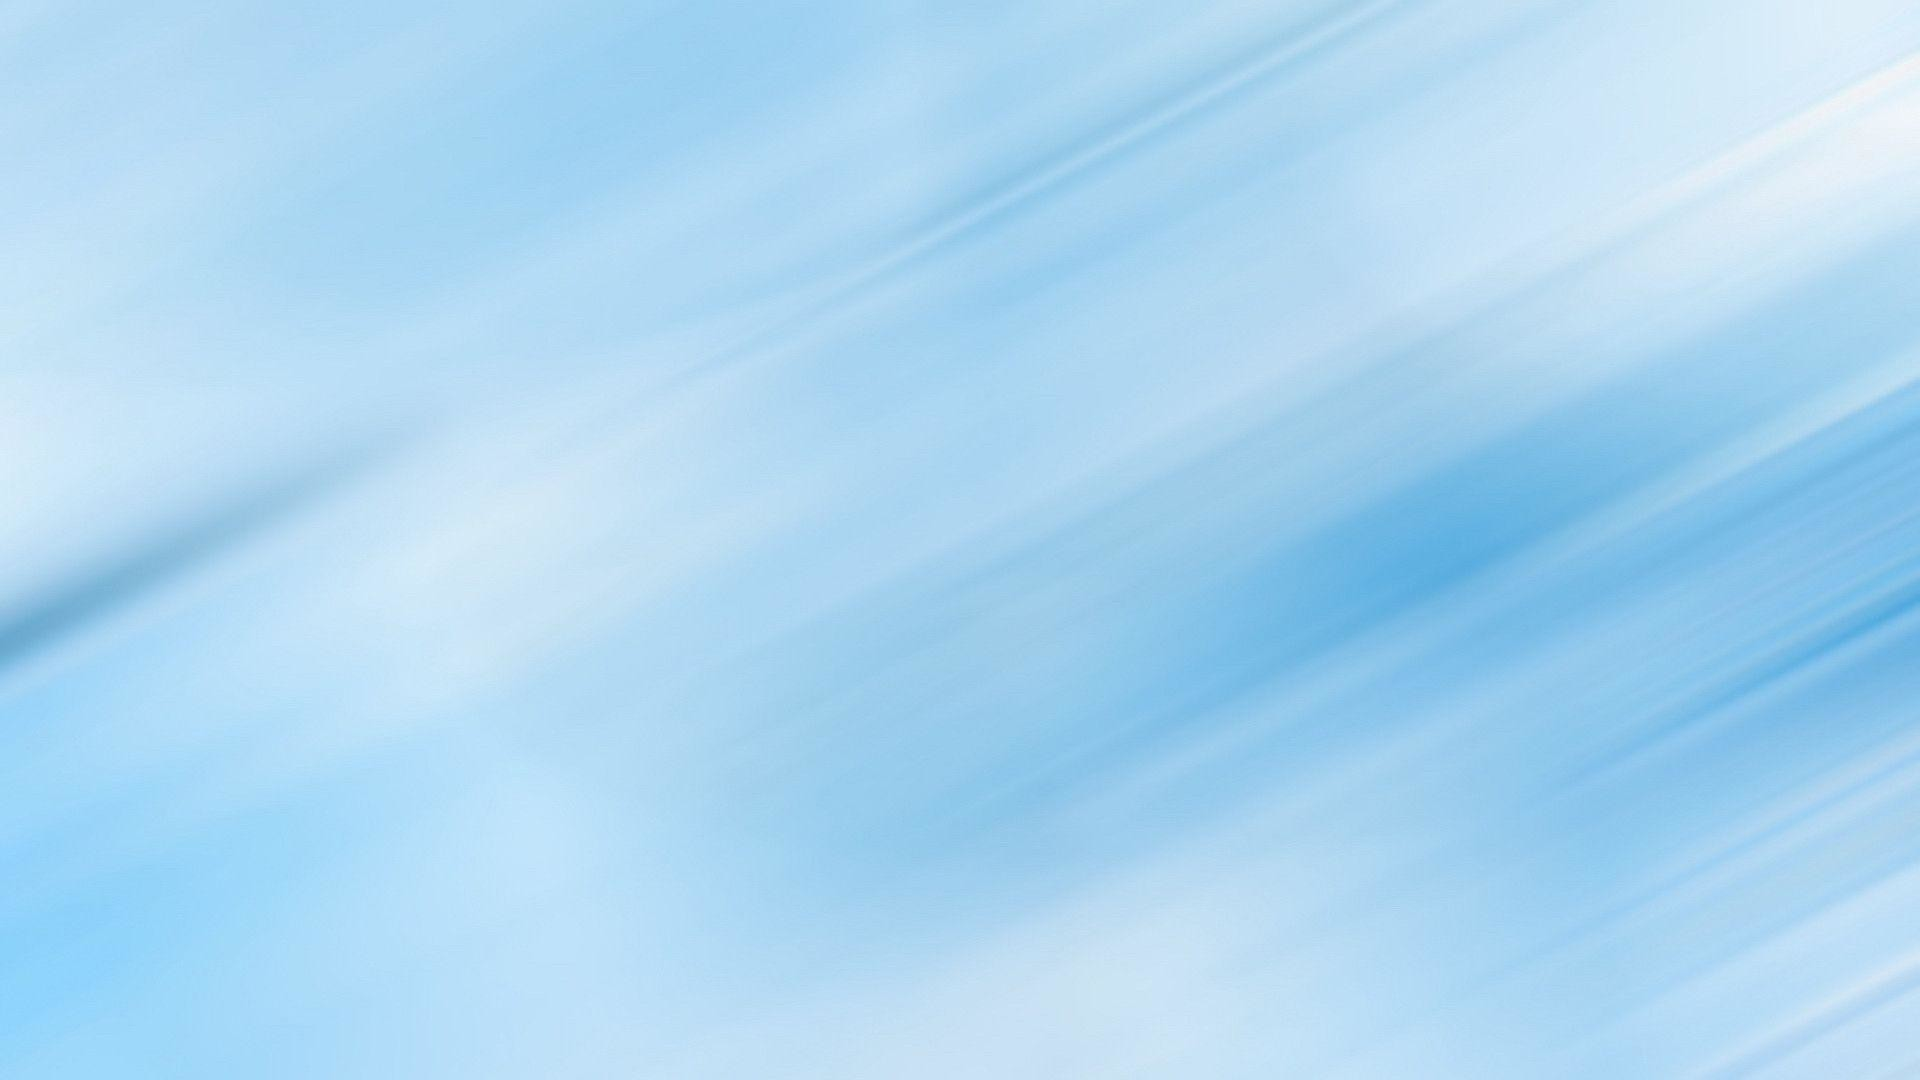 1920x1080 Wallpapers For > Light Sky Blue Background